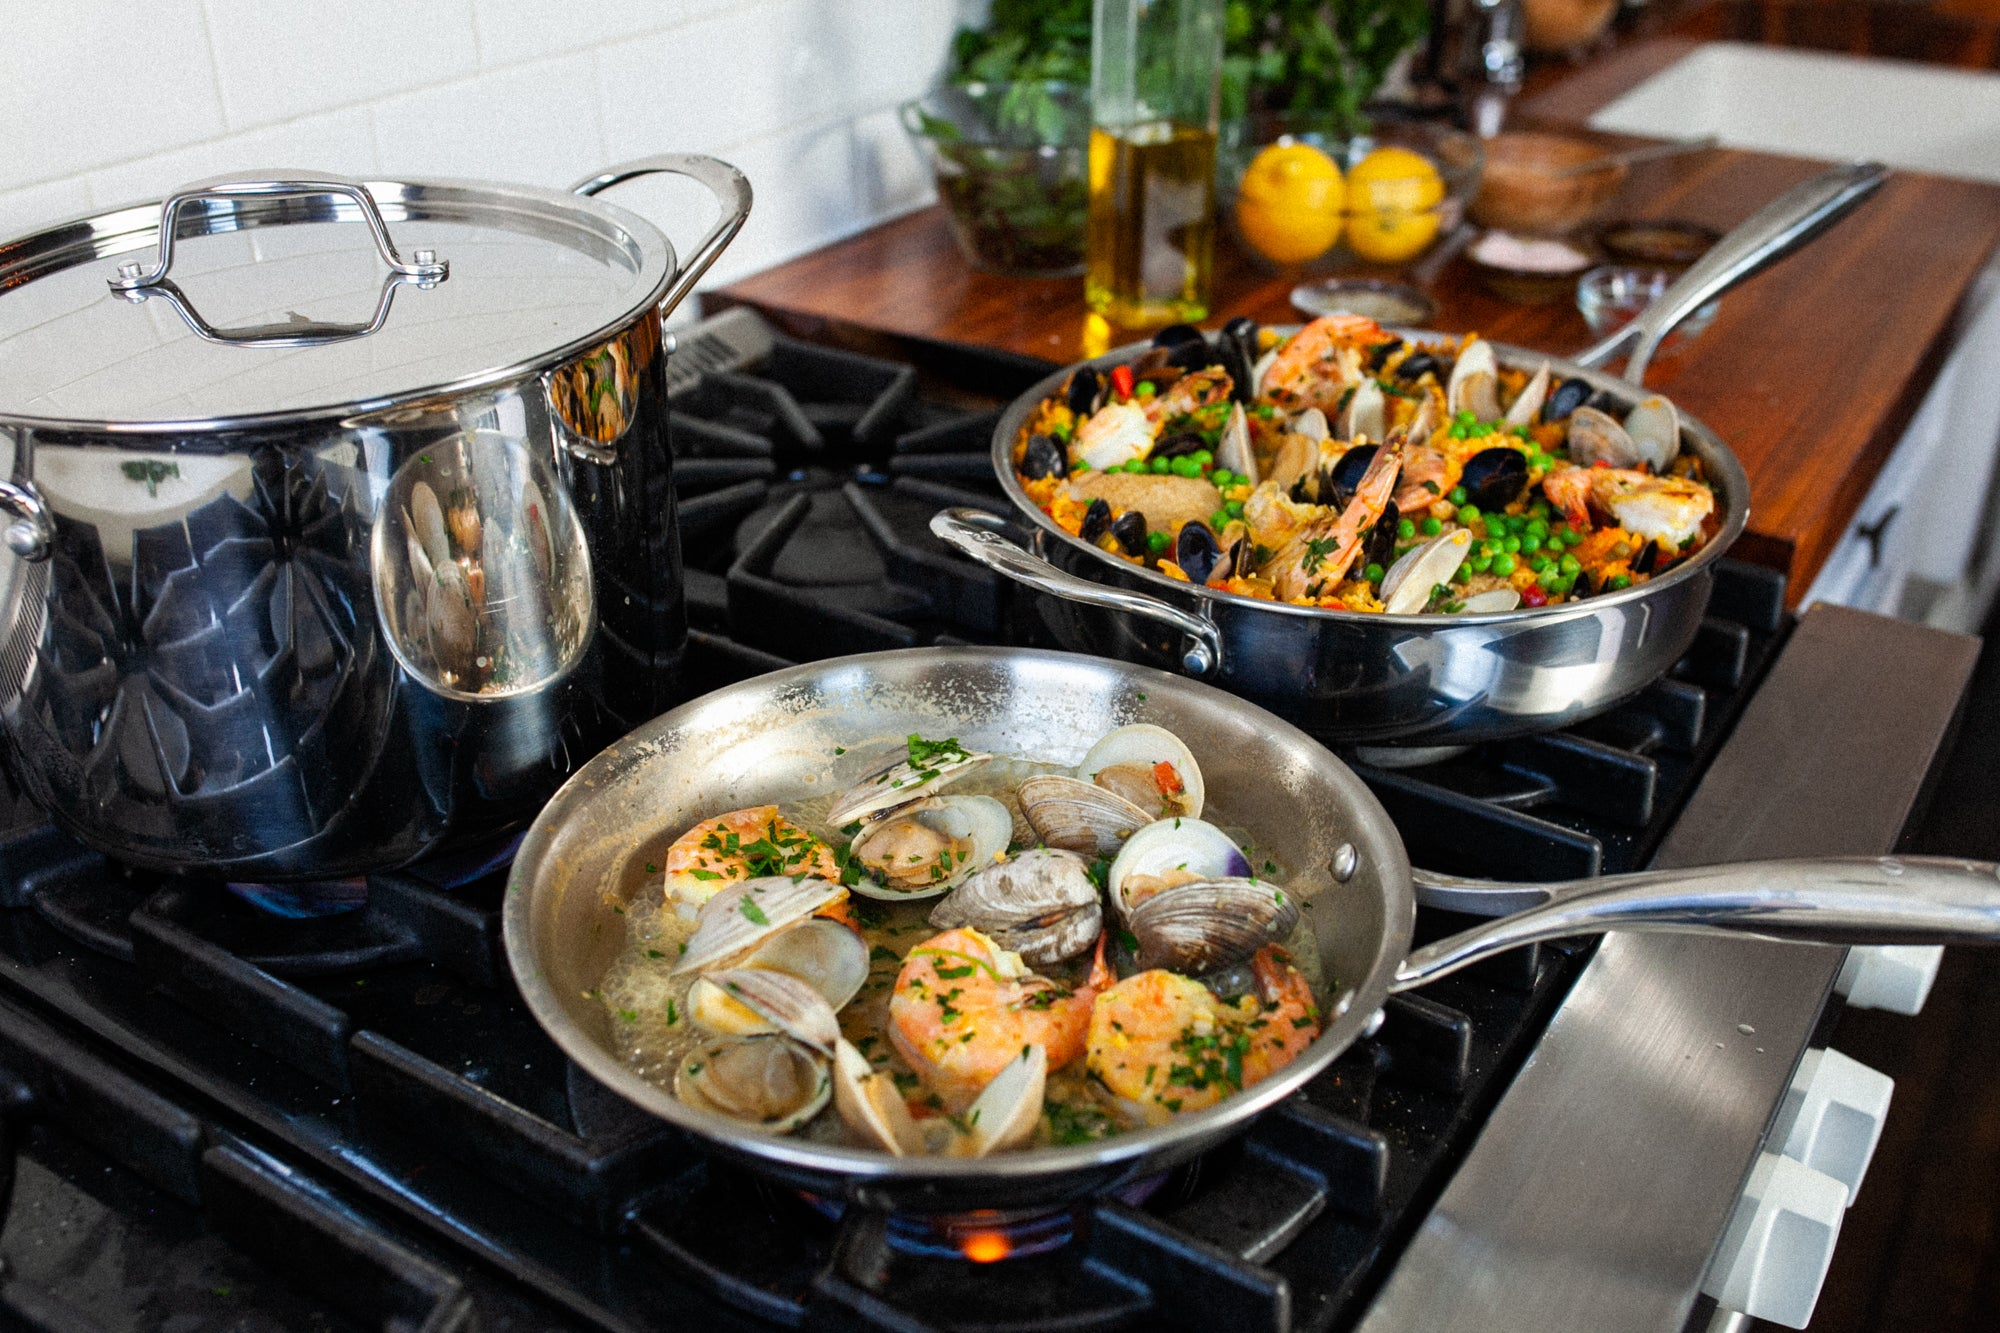 Skillet, Frying Pan, Sauté Pan: What's the difference?